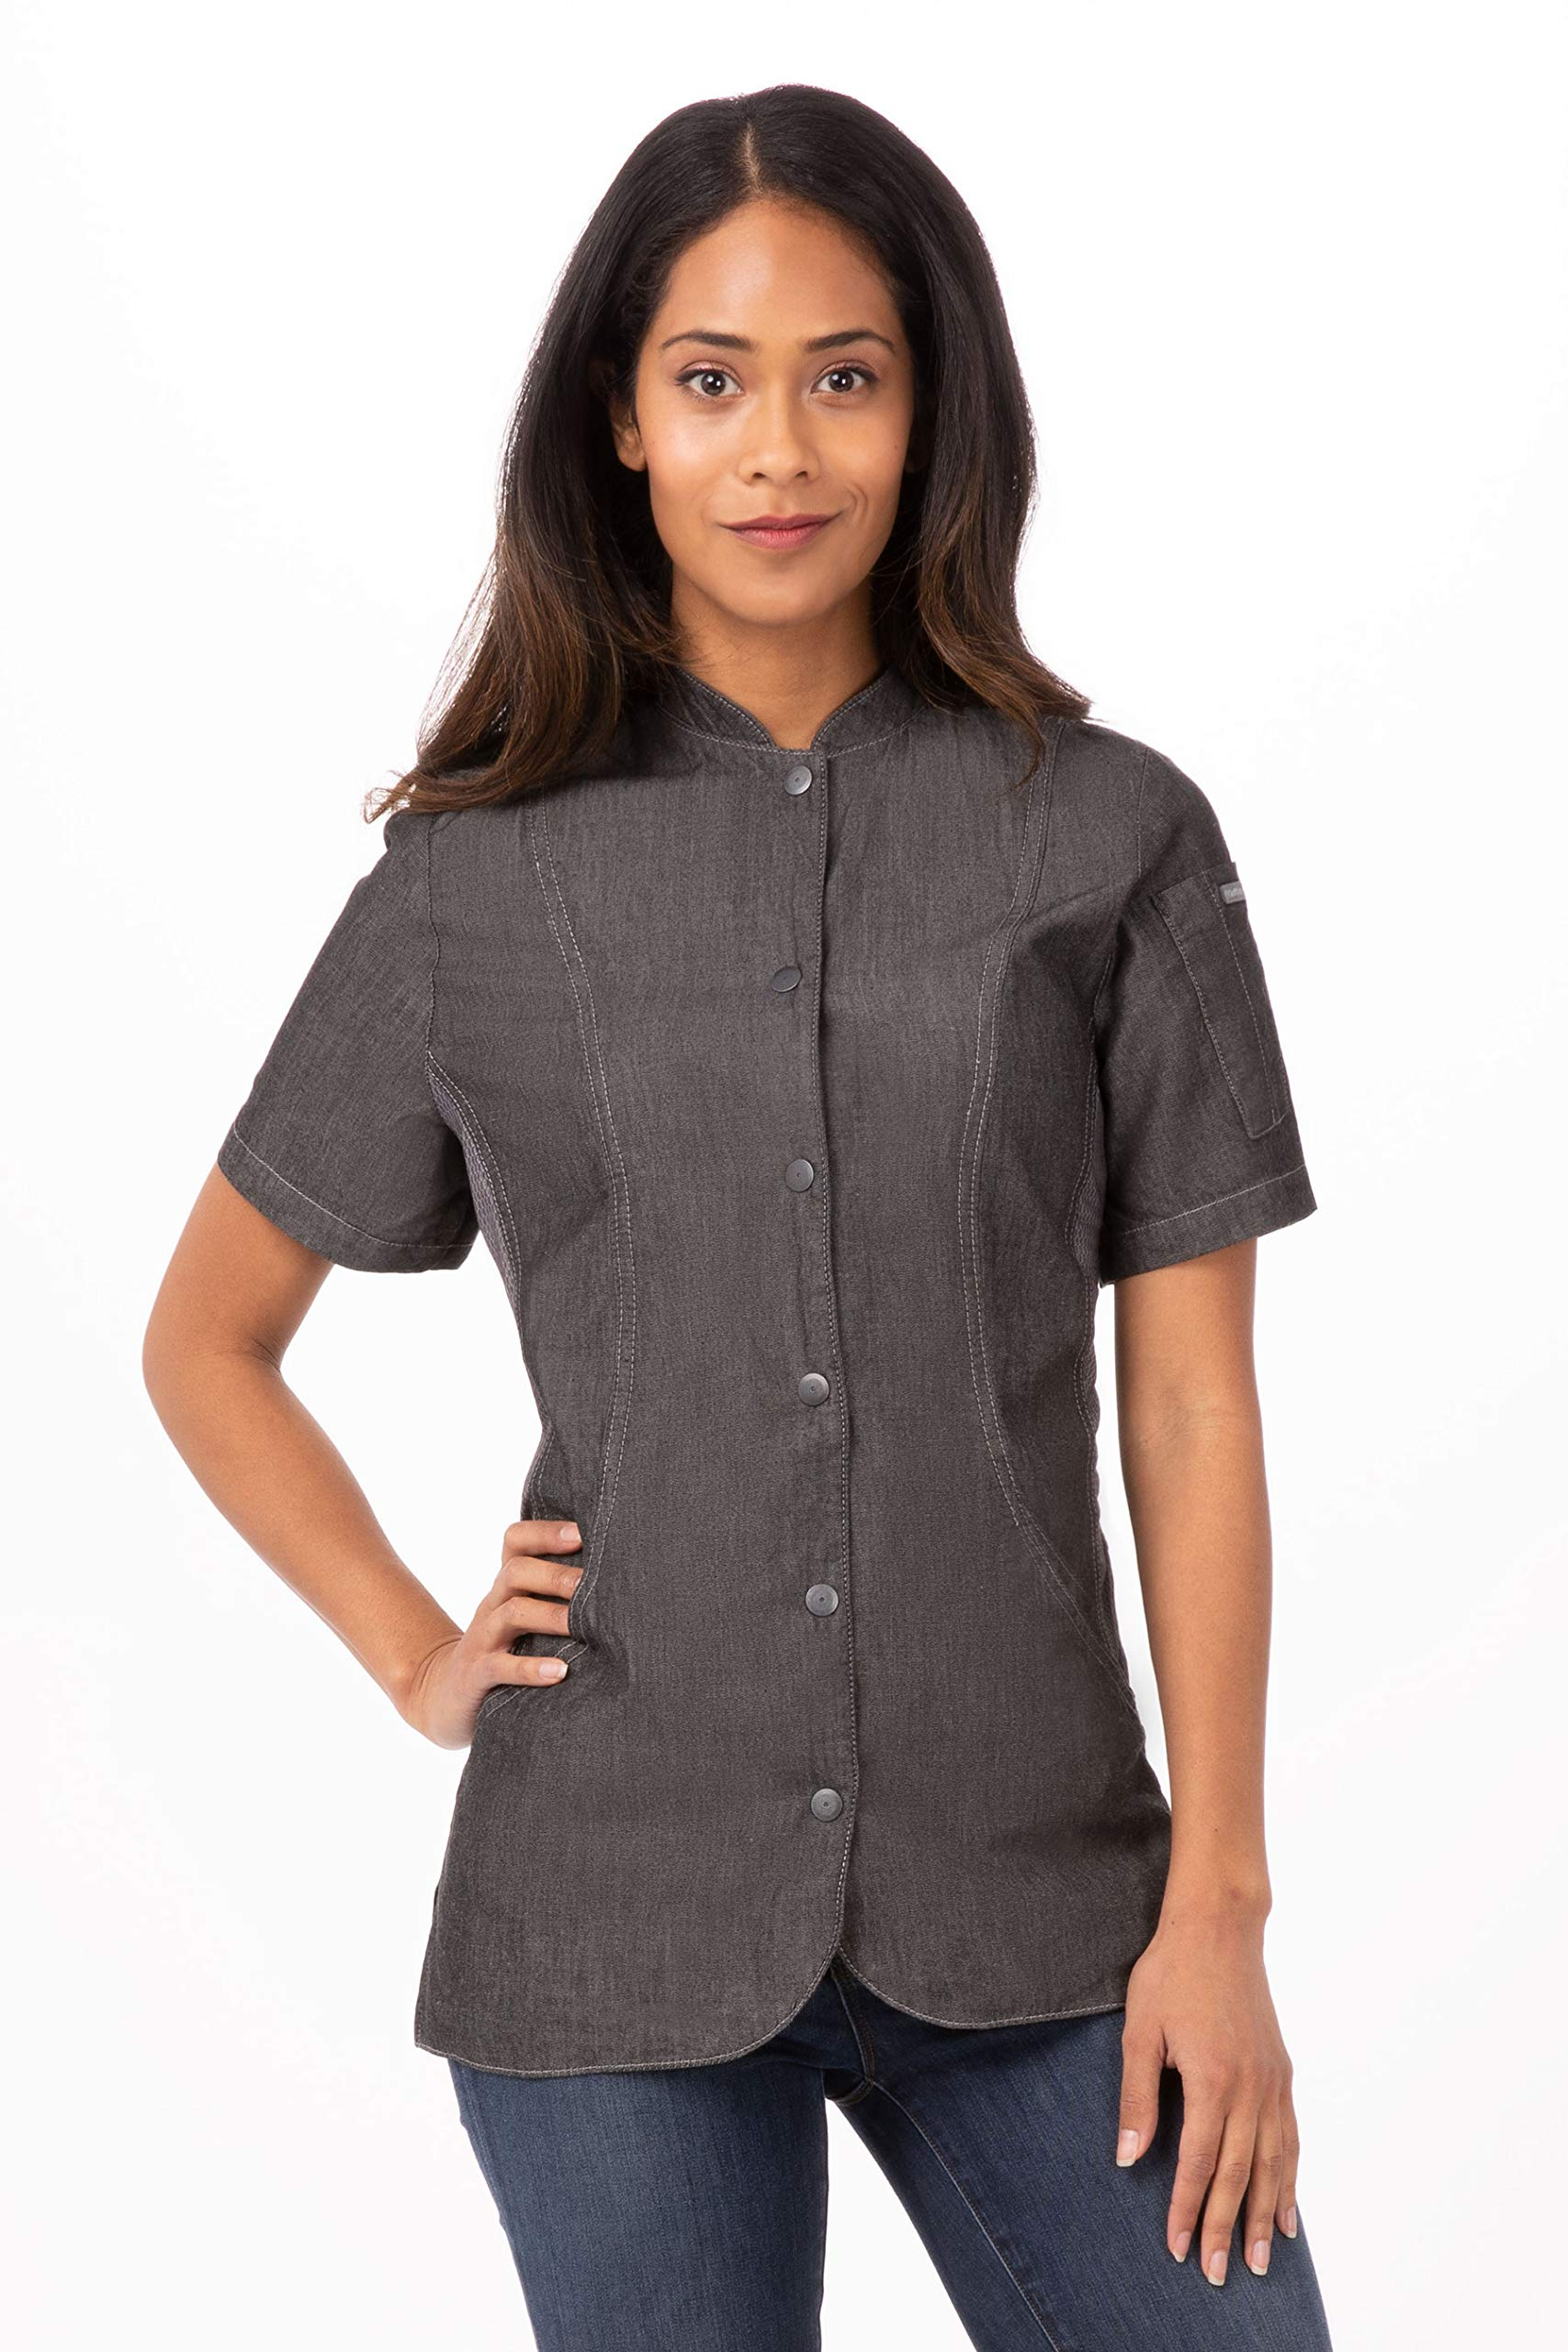 Chef Works Women's Chelsea Chef Coat, Black, X-Small by Chef Works